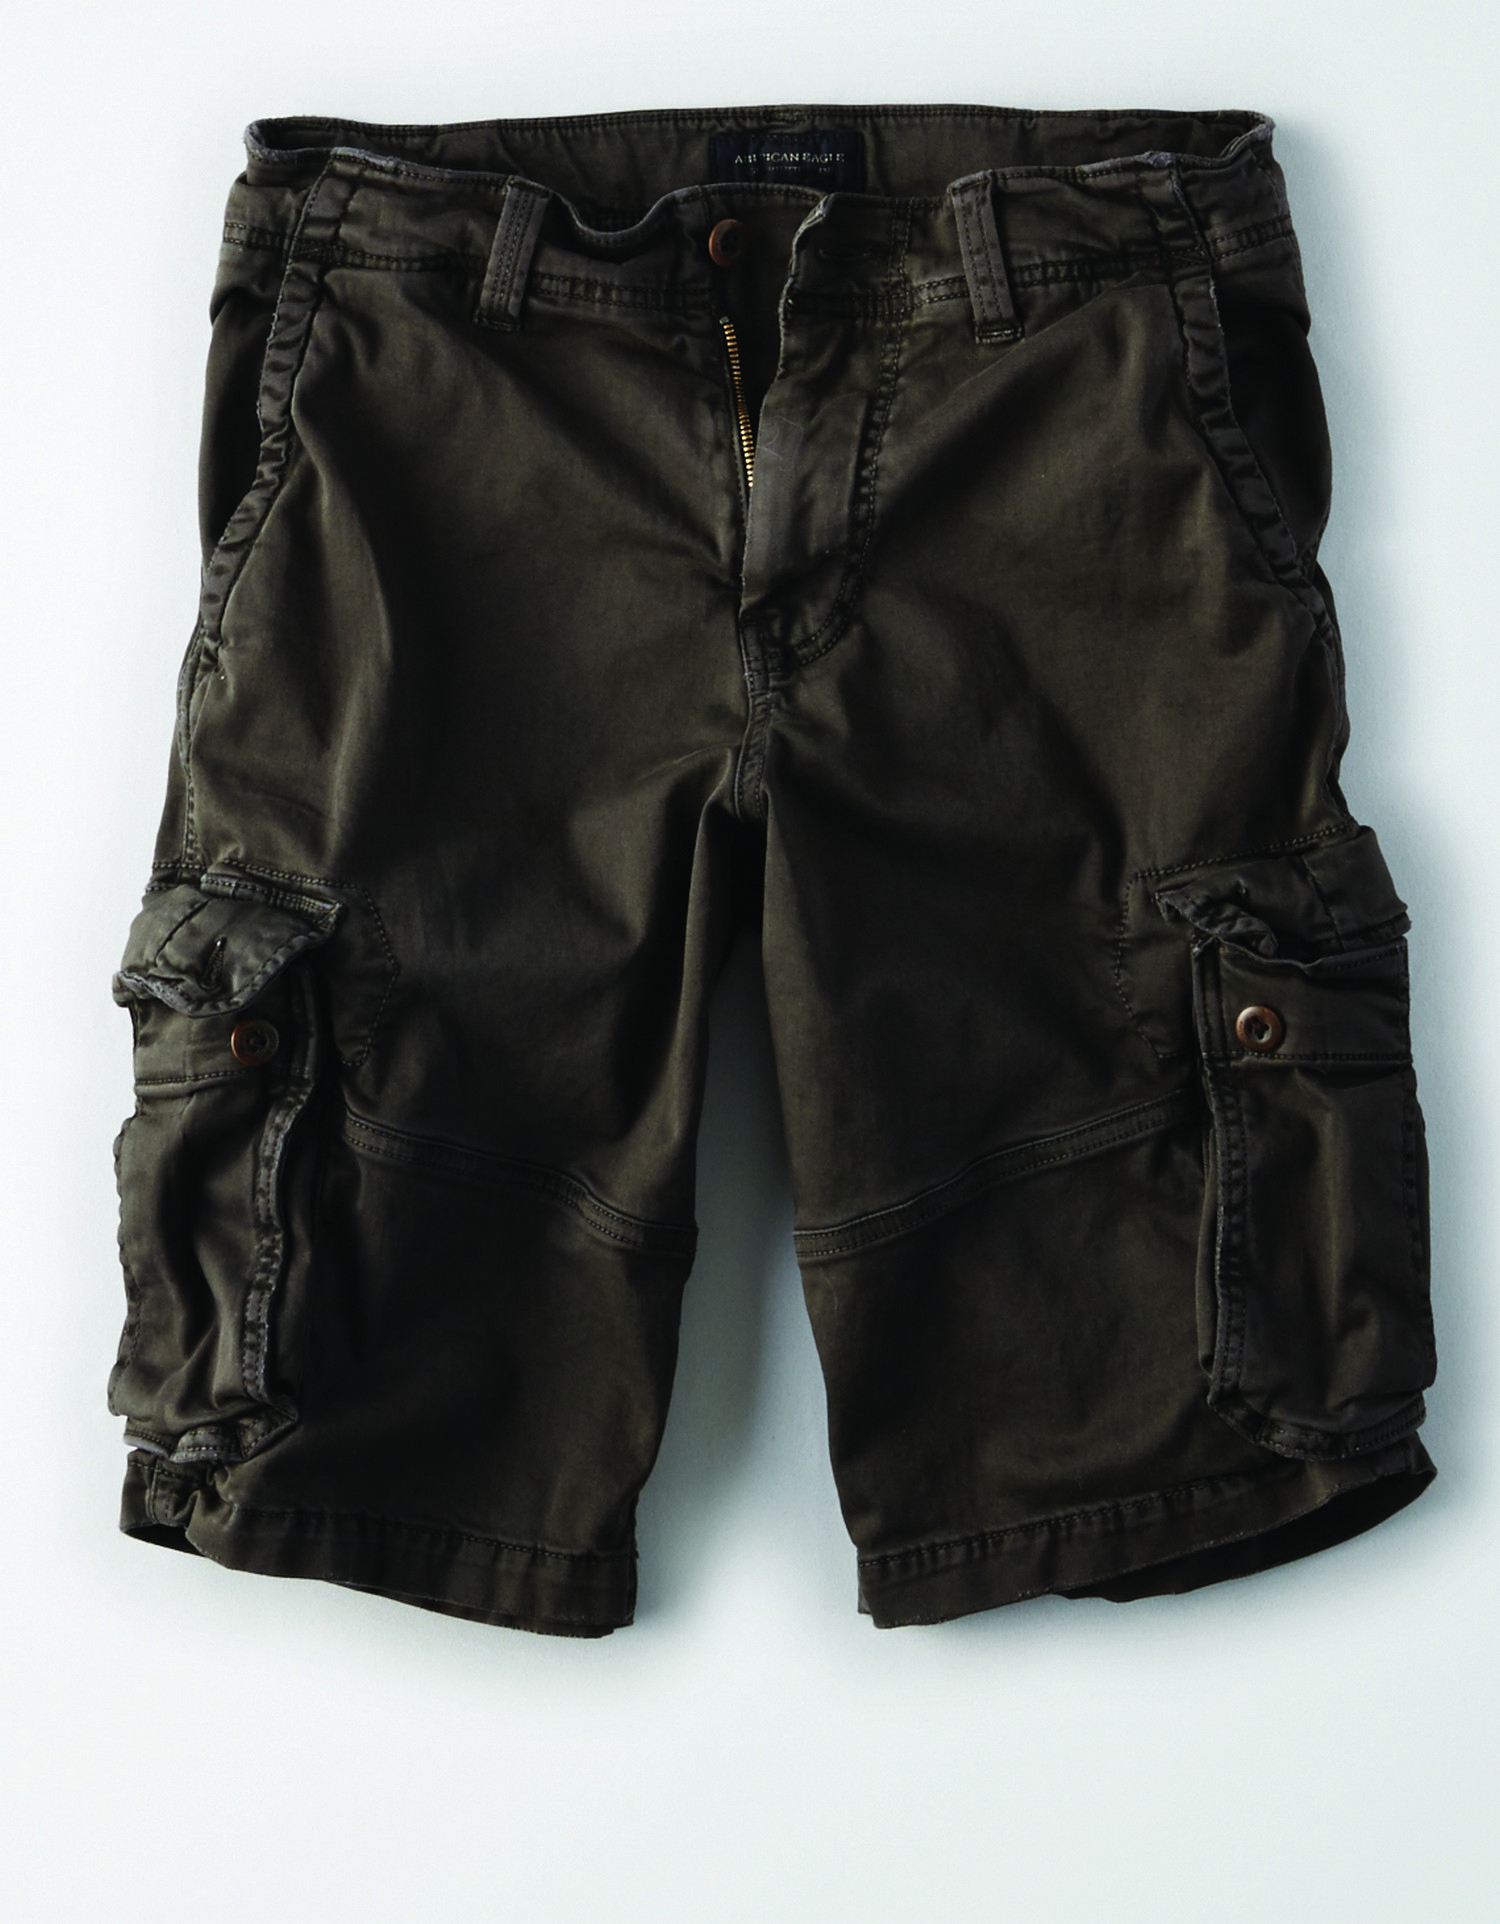 AE - M - Apparel - LONGER LENGTH CARGO - Faded Black - Brown buttons - zipper fly - no destroy BG *Tracked